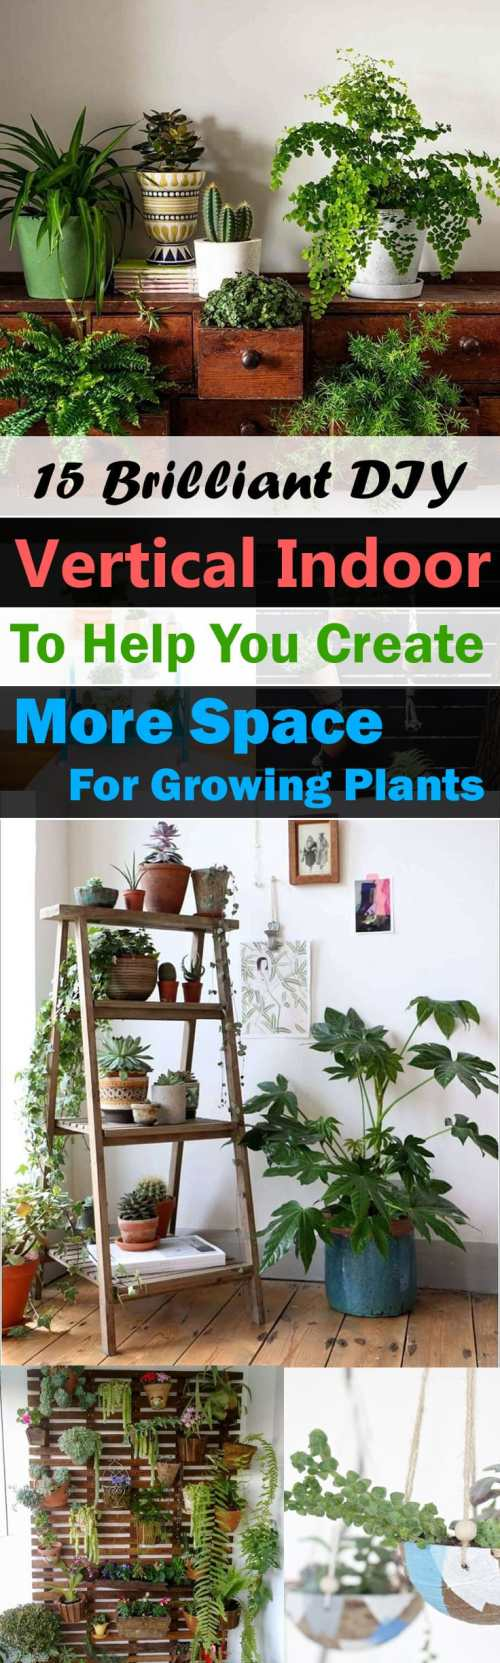 Endearing Gardening Can Be A Challenge If Short Diy Vertical Garden Ideas To Help You Create Diy Vertical Garden Wall Vertical Vegetable Garden Diy